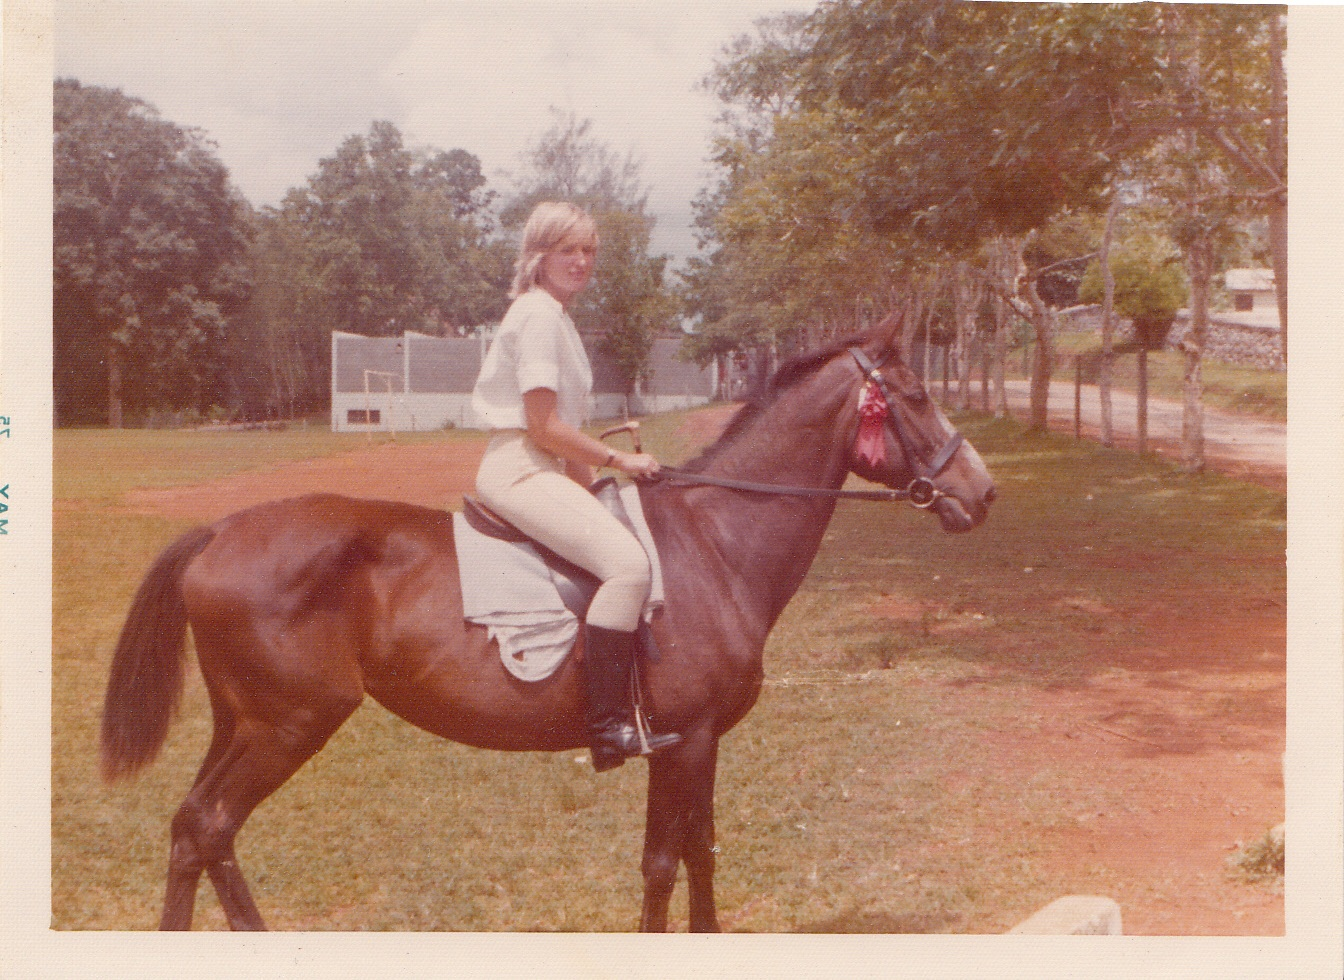 This is me at 14 with my first horse Lady in 1975 at my first horse show.  She was an Anglo Arab and was about 25 at the time. I had just taken my hat off and won my first Equitation class.  Memories!  And no trailering, I had to ride her to the show and then home at the end of the day, about an hour and half ride through the town of Mandeville, and home on back roads.